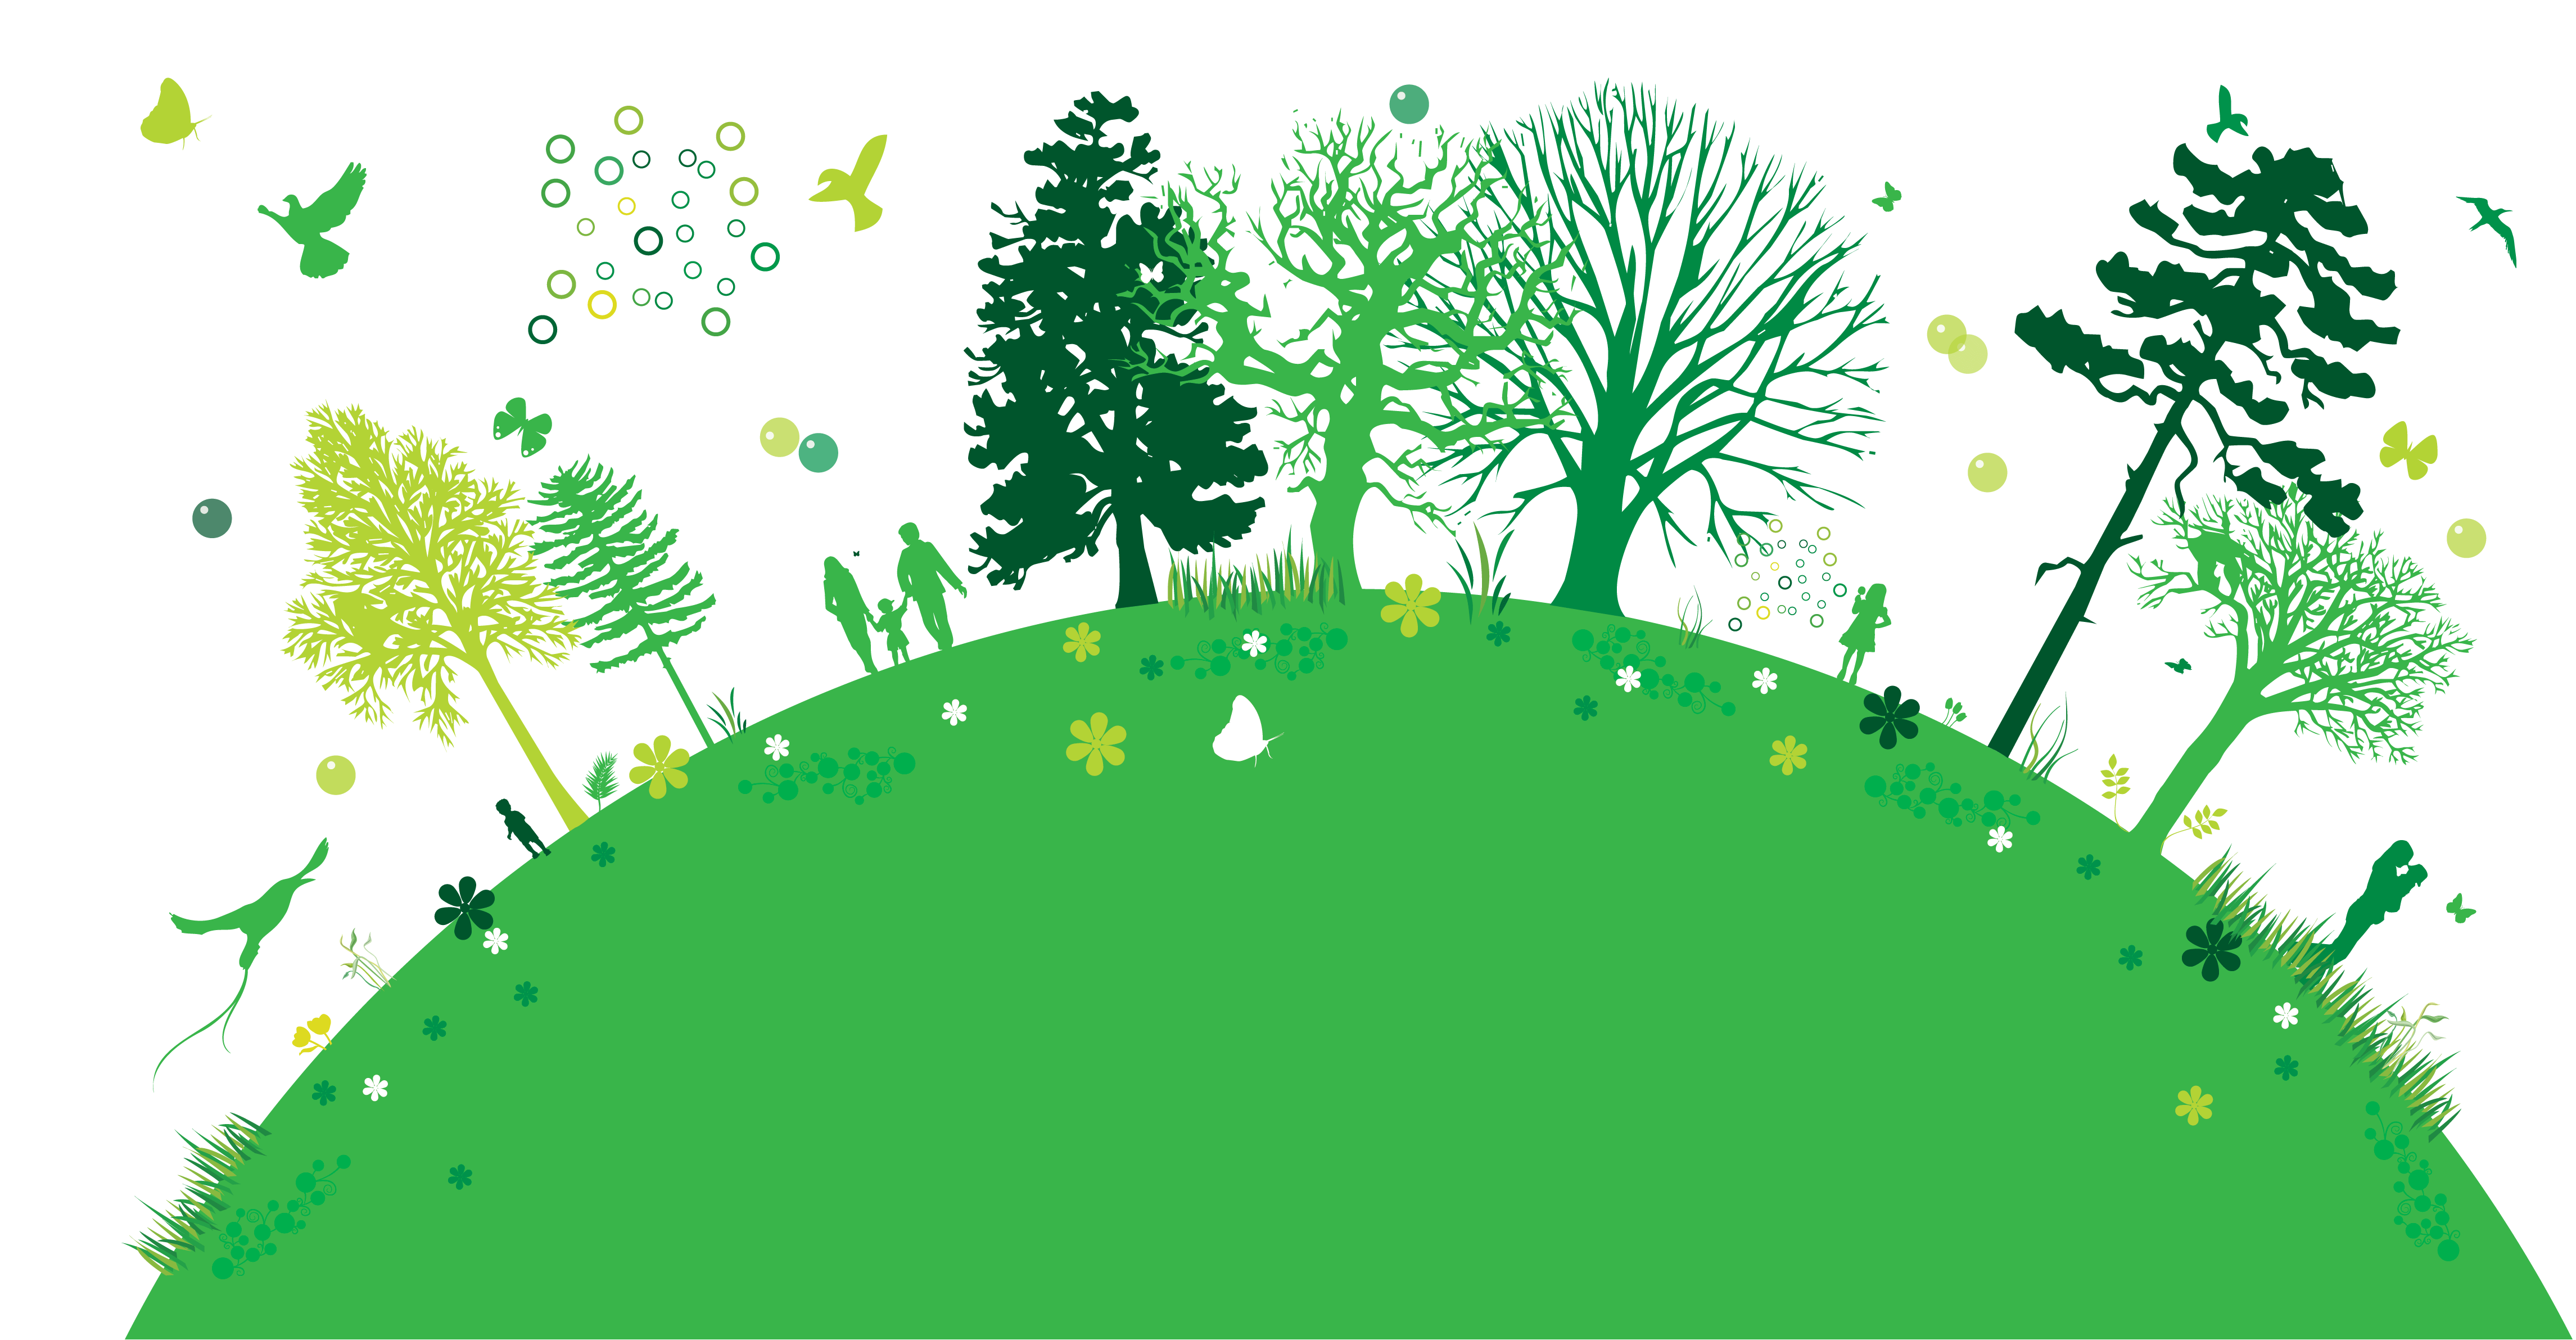 Life green systems philosophy. Clipart forest fresh water